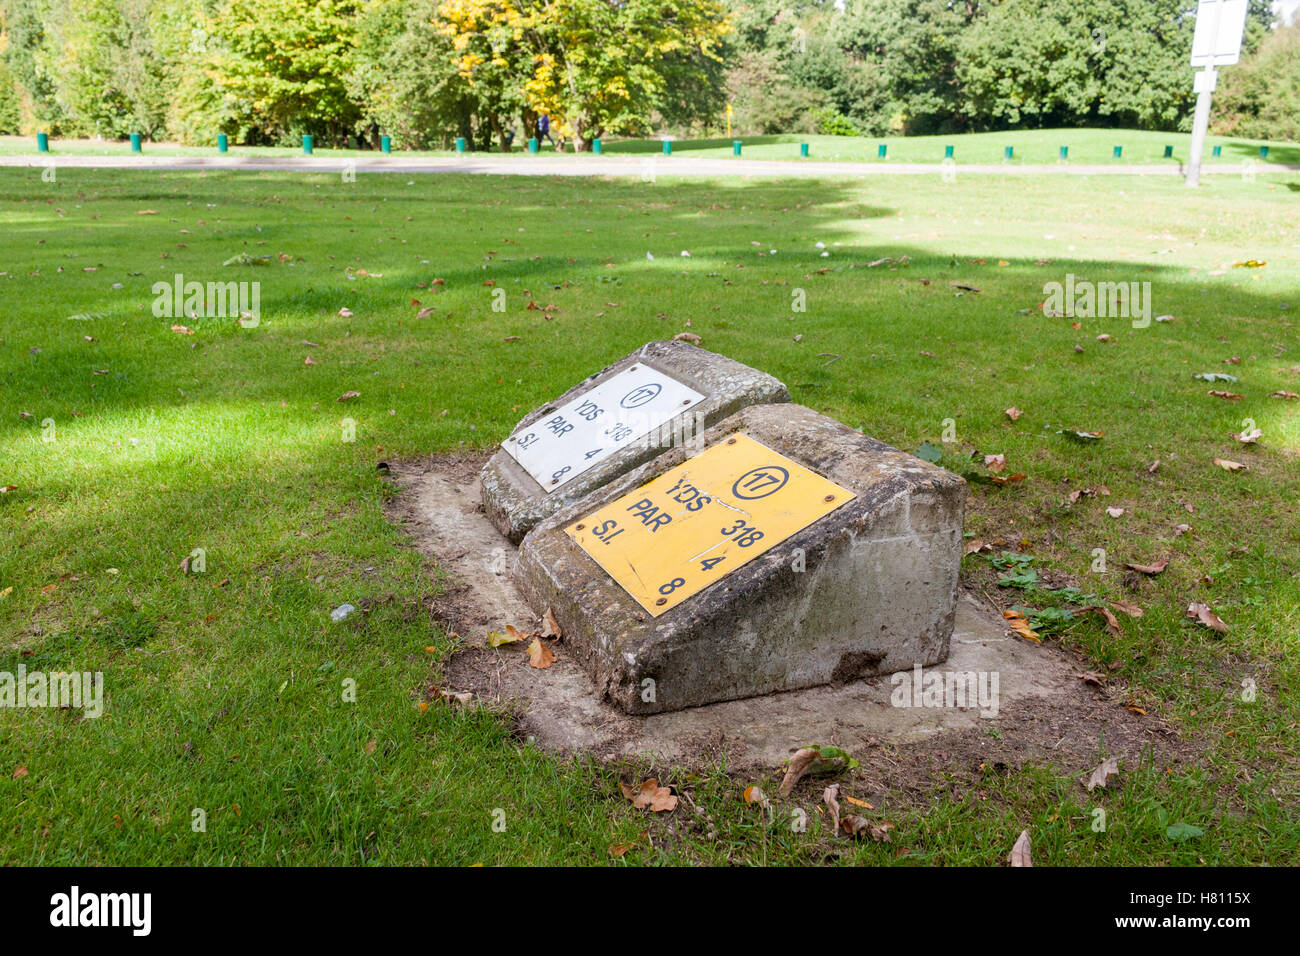 Tee markers denoting the teeing ground for hole 17 at Ruislip Golf Course, West Ruislip, Greater London, UK - Stock Image